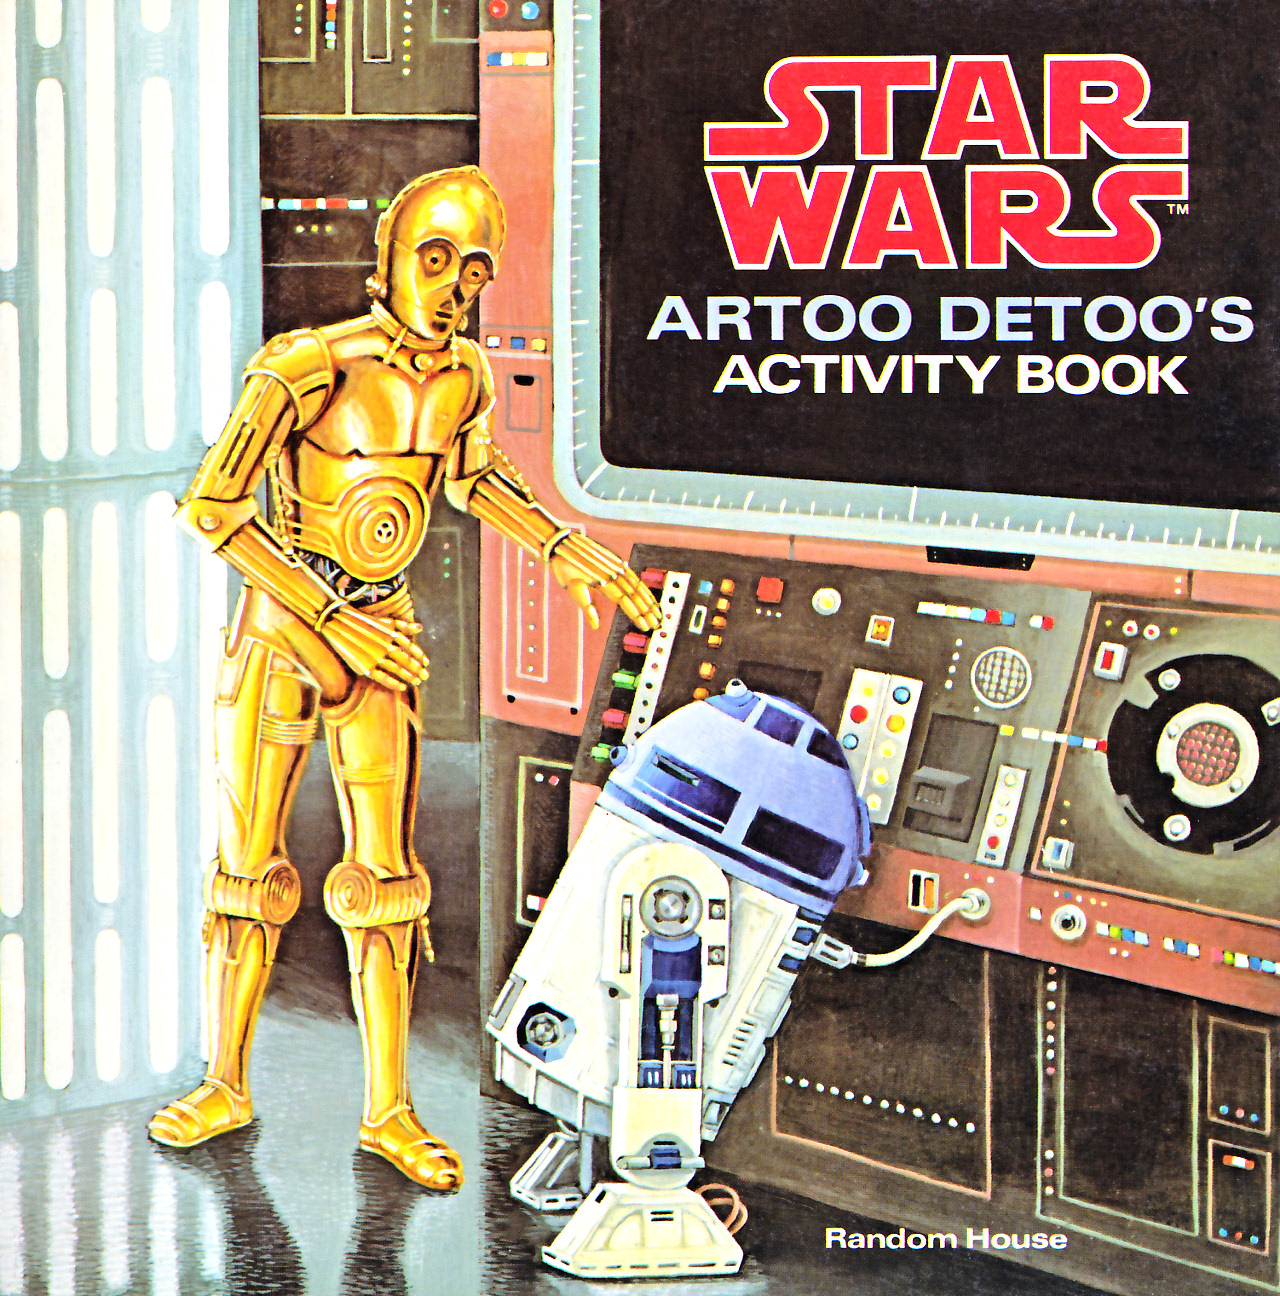 Star Wars: Artoo-Detoo's Activity Book